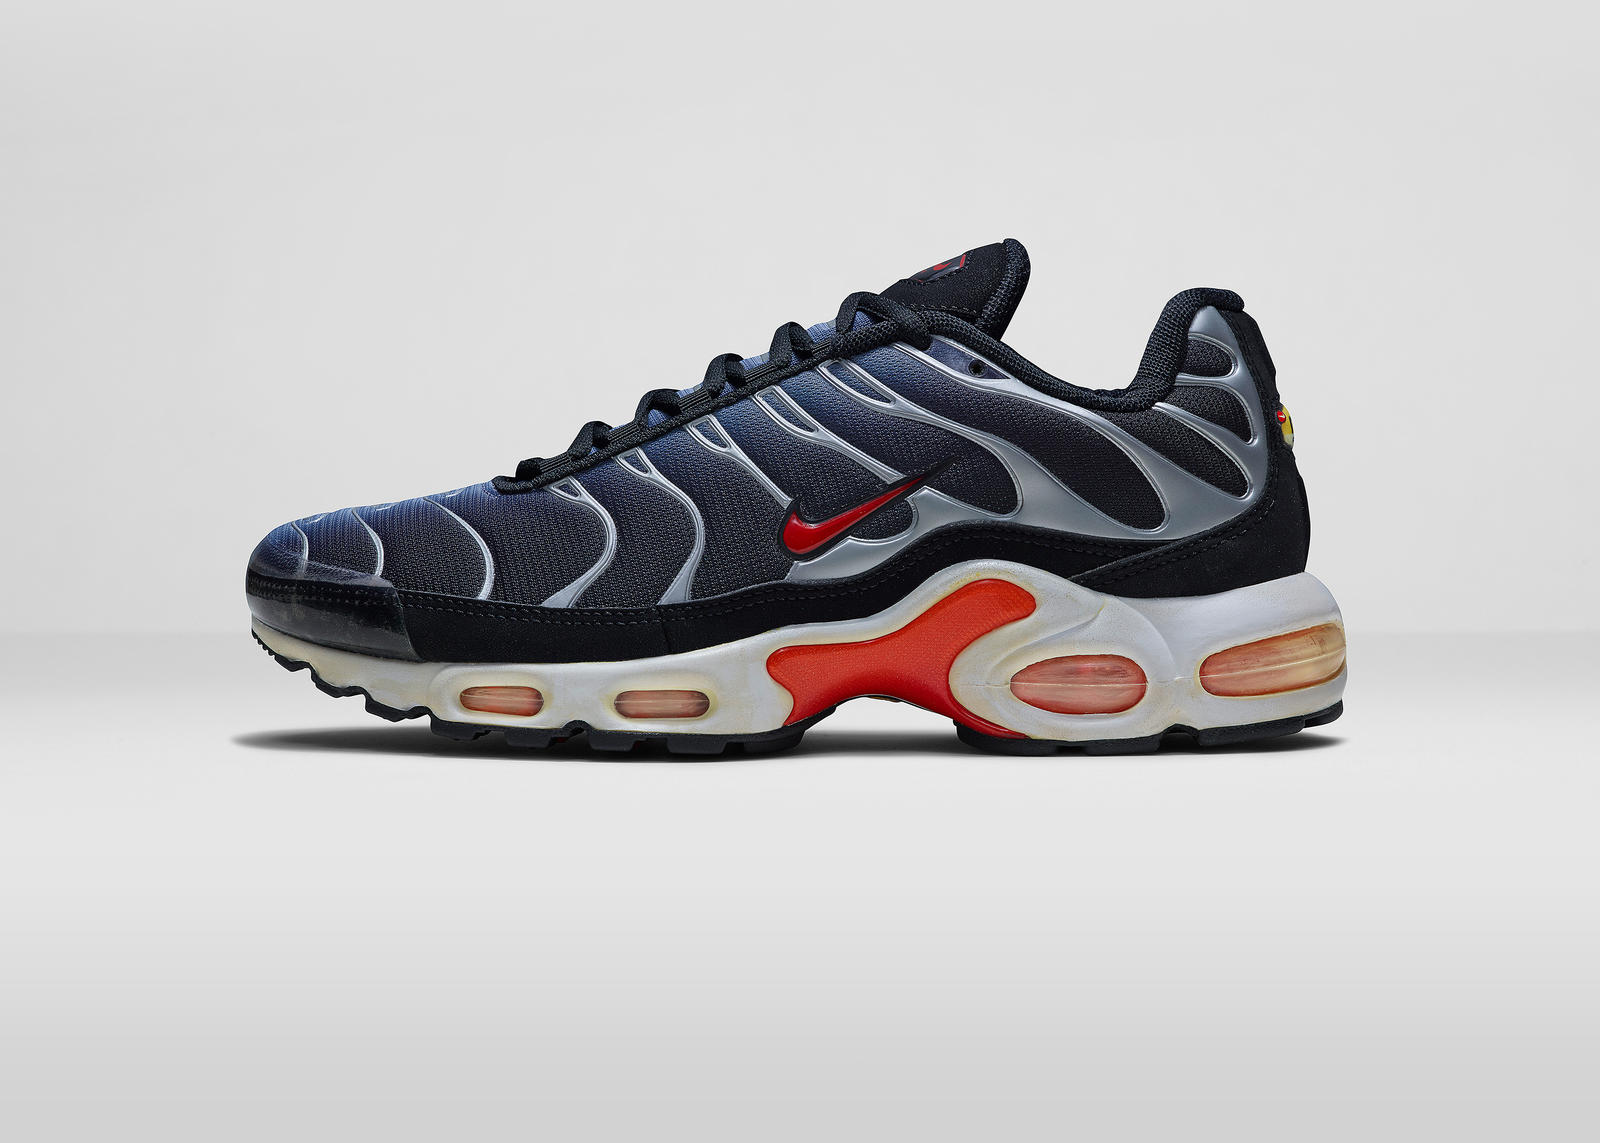 finest selection a9c8e b291f Air Max Plus (1998). Nike AirMaxDay 2015 15778 LAT.  Nike AirMaxDay 2015 15778 OUT